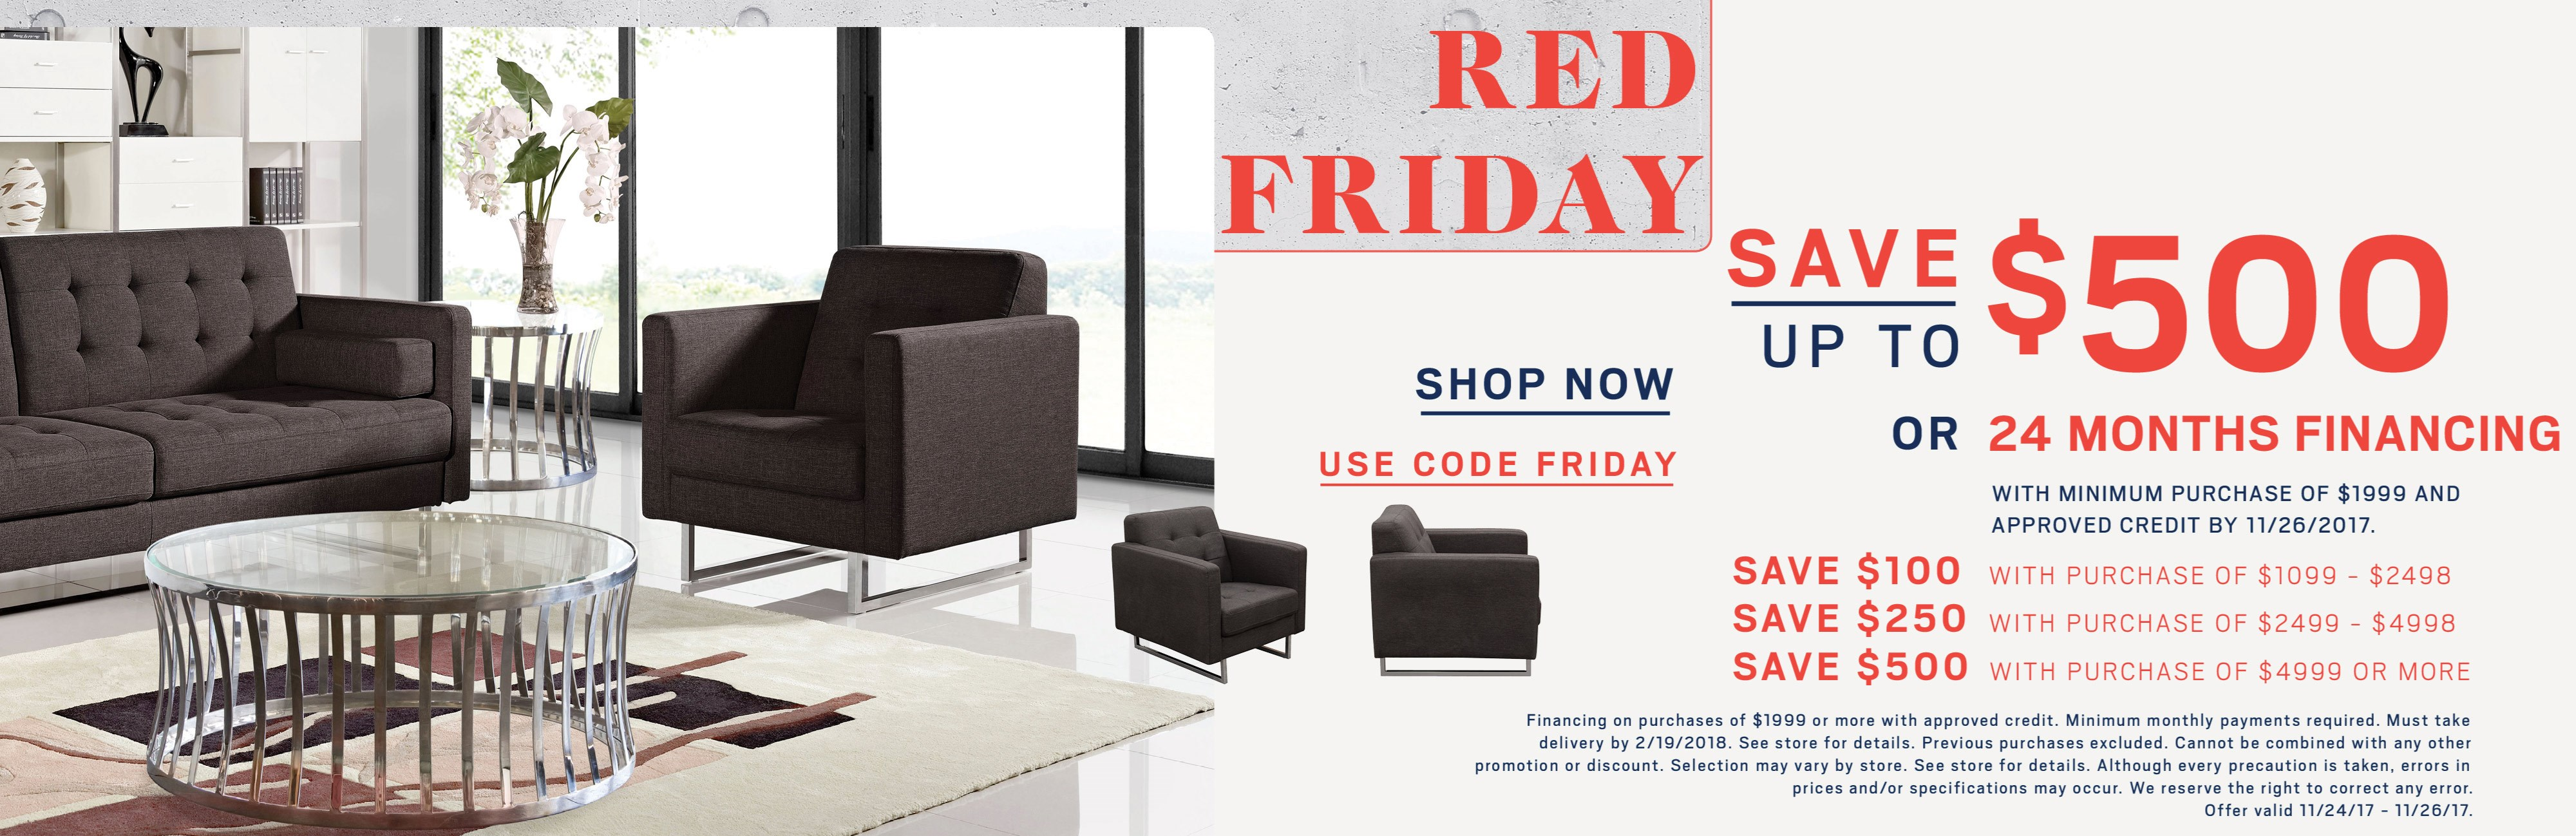 Red Friday; save up to $500 or special financing available. See store for details.